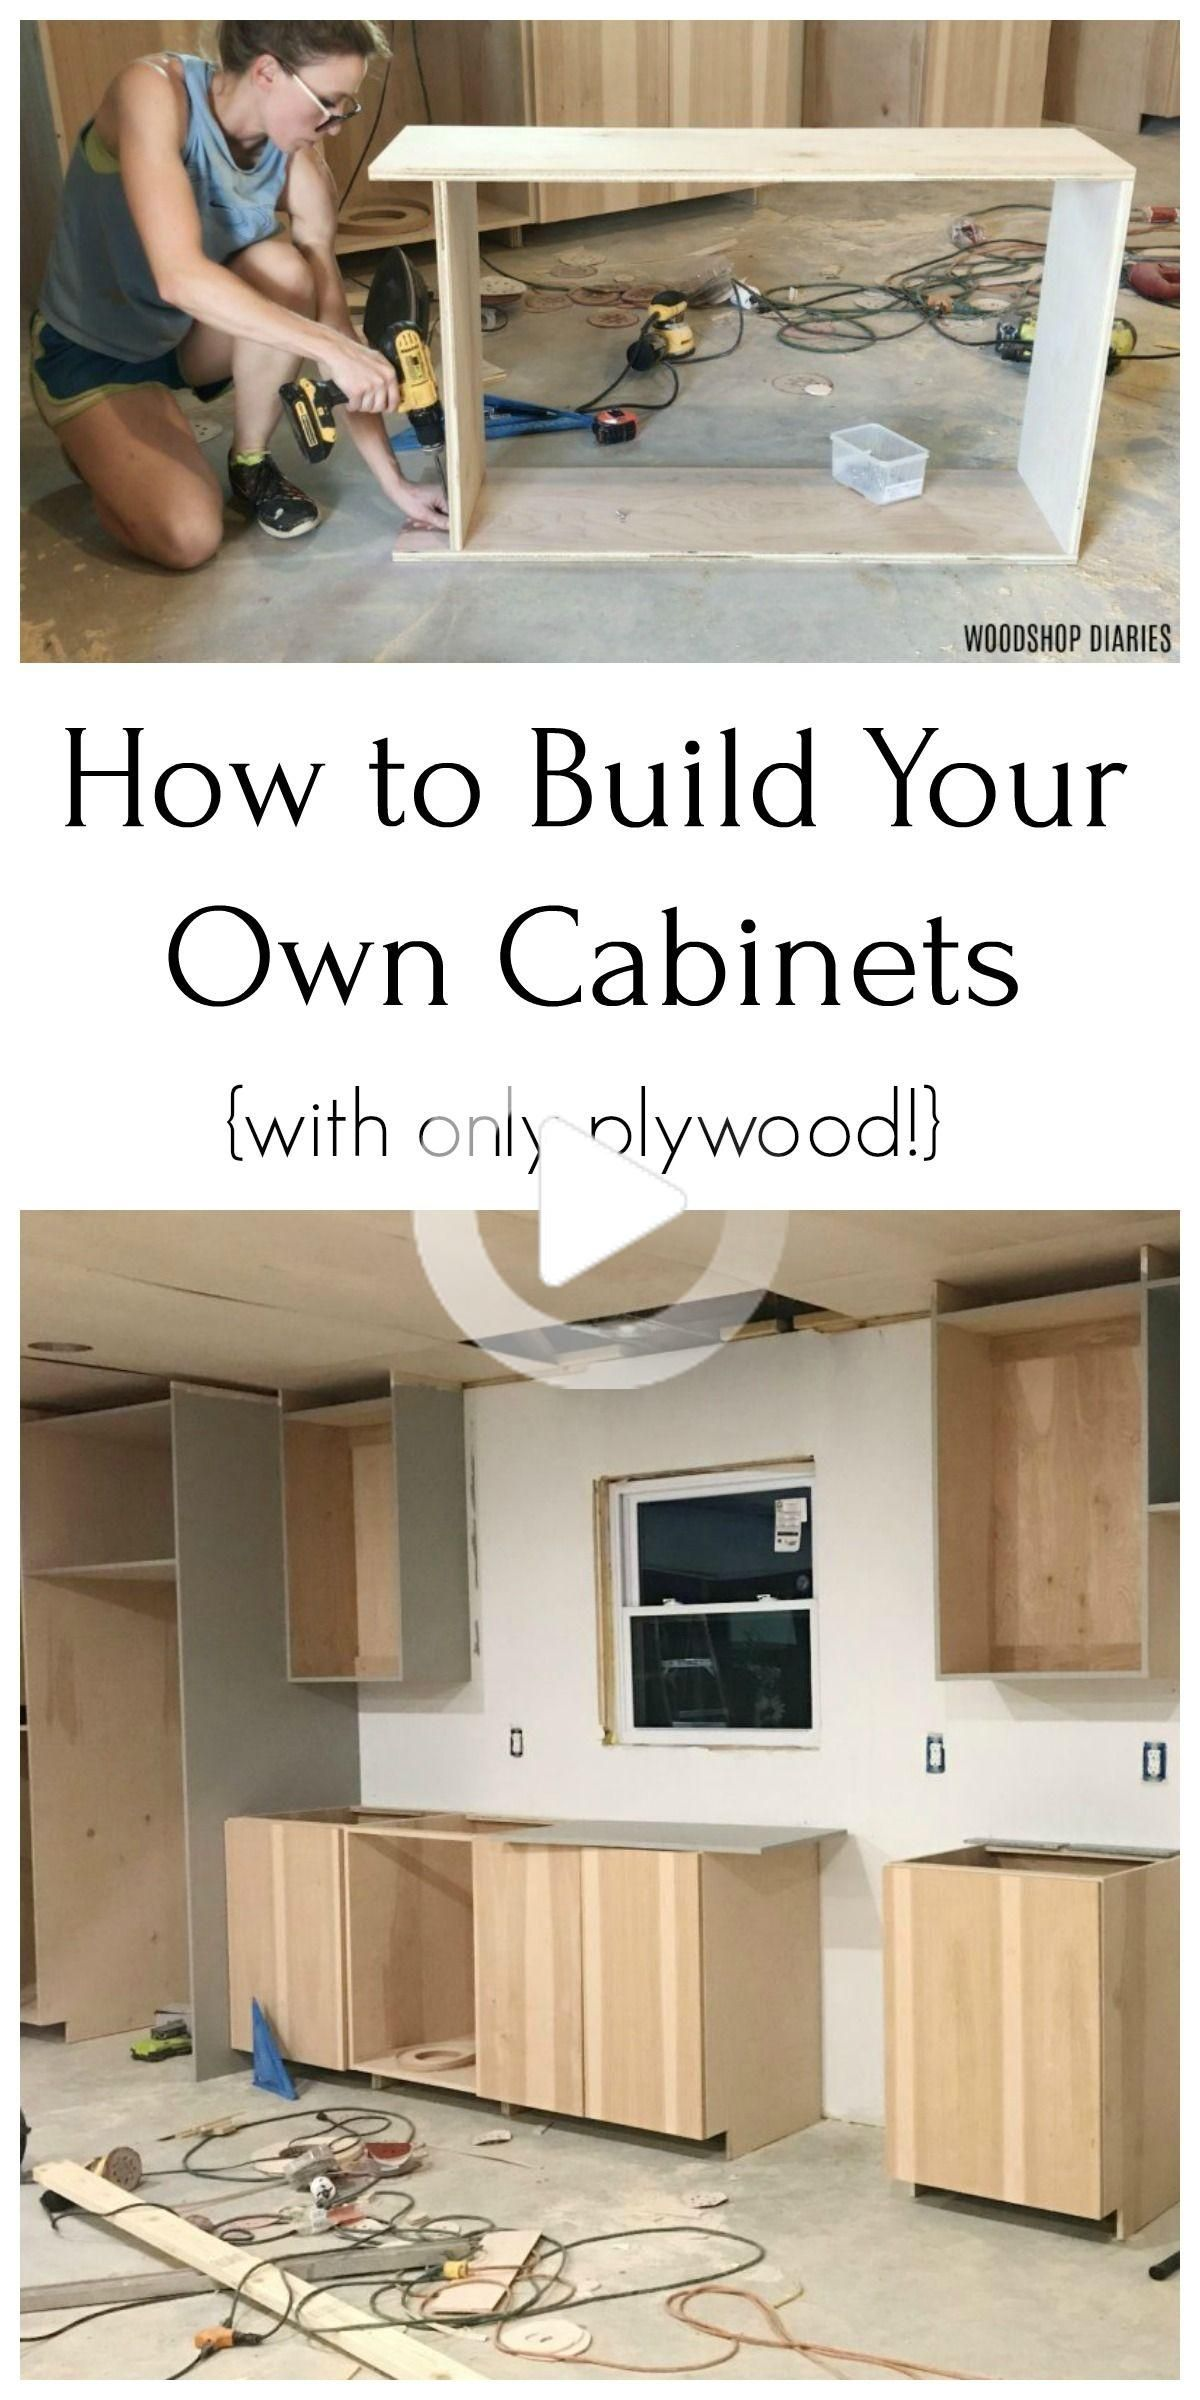 11 Kitchen Cabinet Designs Ideas You Ll Want To Save Before Renovating In 2020 Farmhouse Style Kitchen Cabinets Kitchen Cabinet Styles Plywood Kitchen